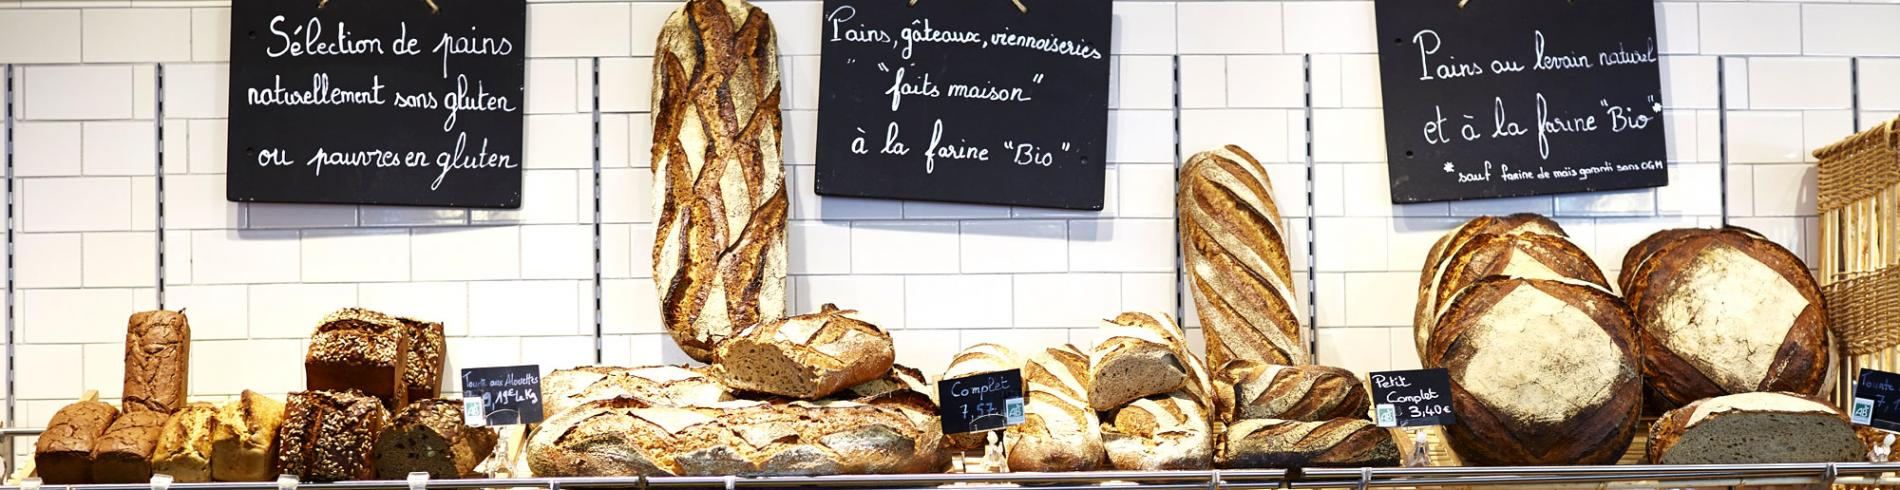 Shelves full of breads, cakes and pastries